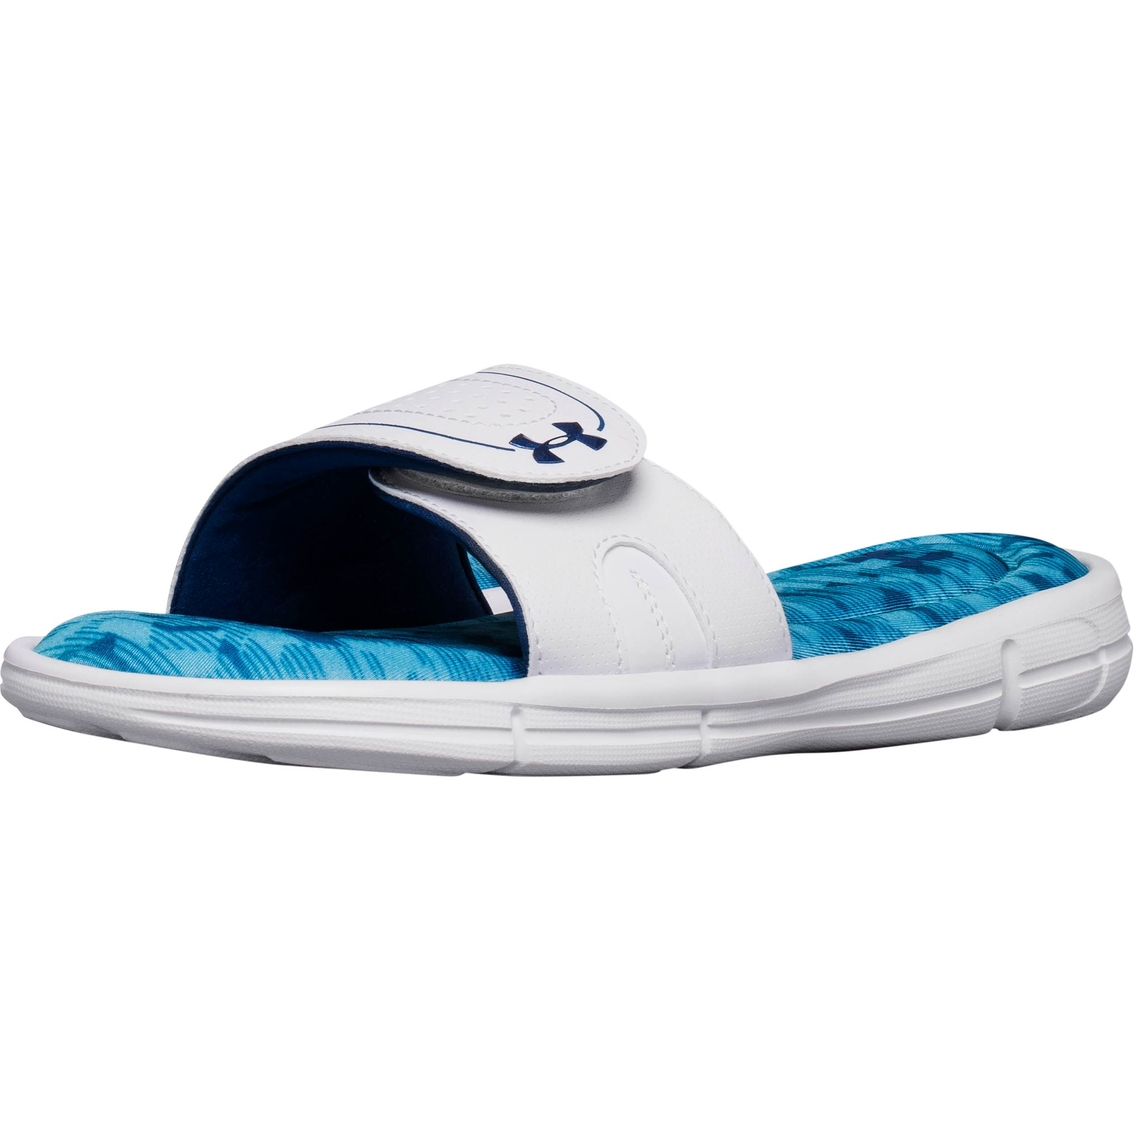 online store 99214 a5a20 Under Armour Women s Ignite VIII Edge Slide Sandals